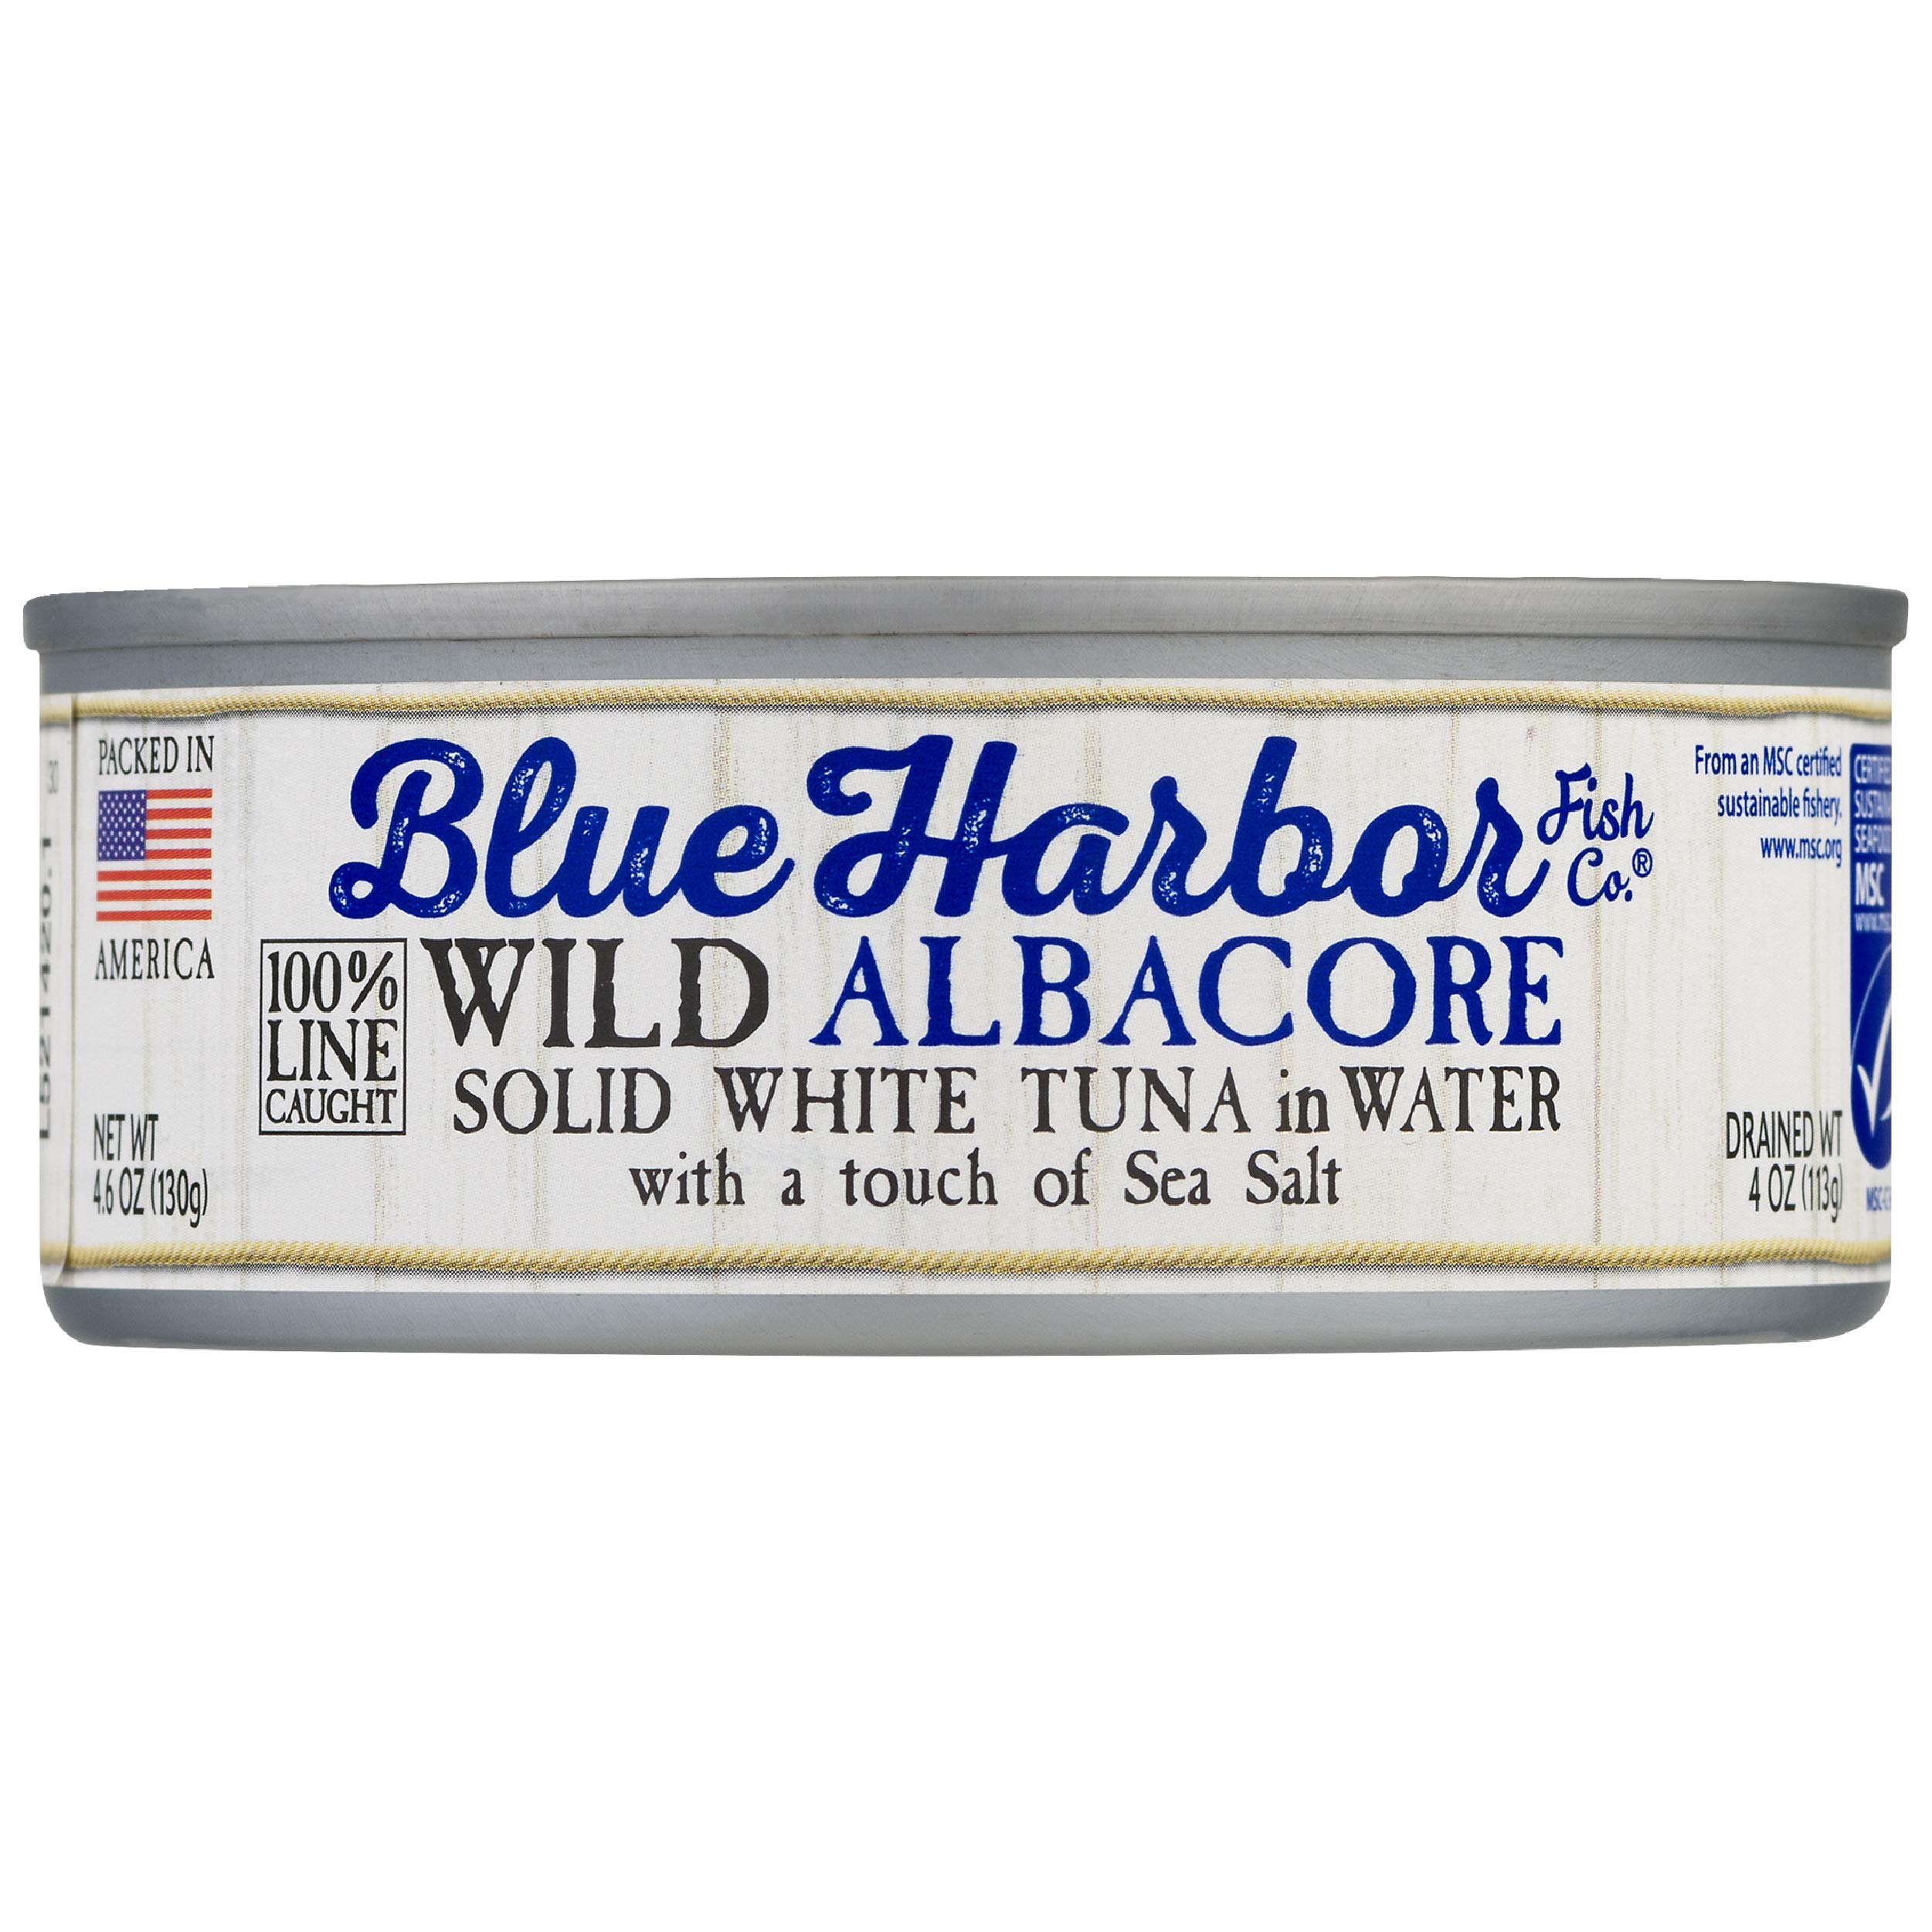 Blue Harbor Fish Co. Wild Albacore Solid White Tuna in Water with Sea Salt - 4.6 oz Can (Pack of 12)